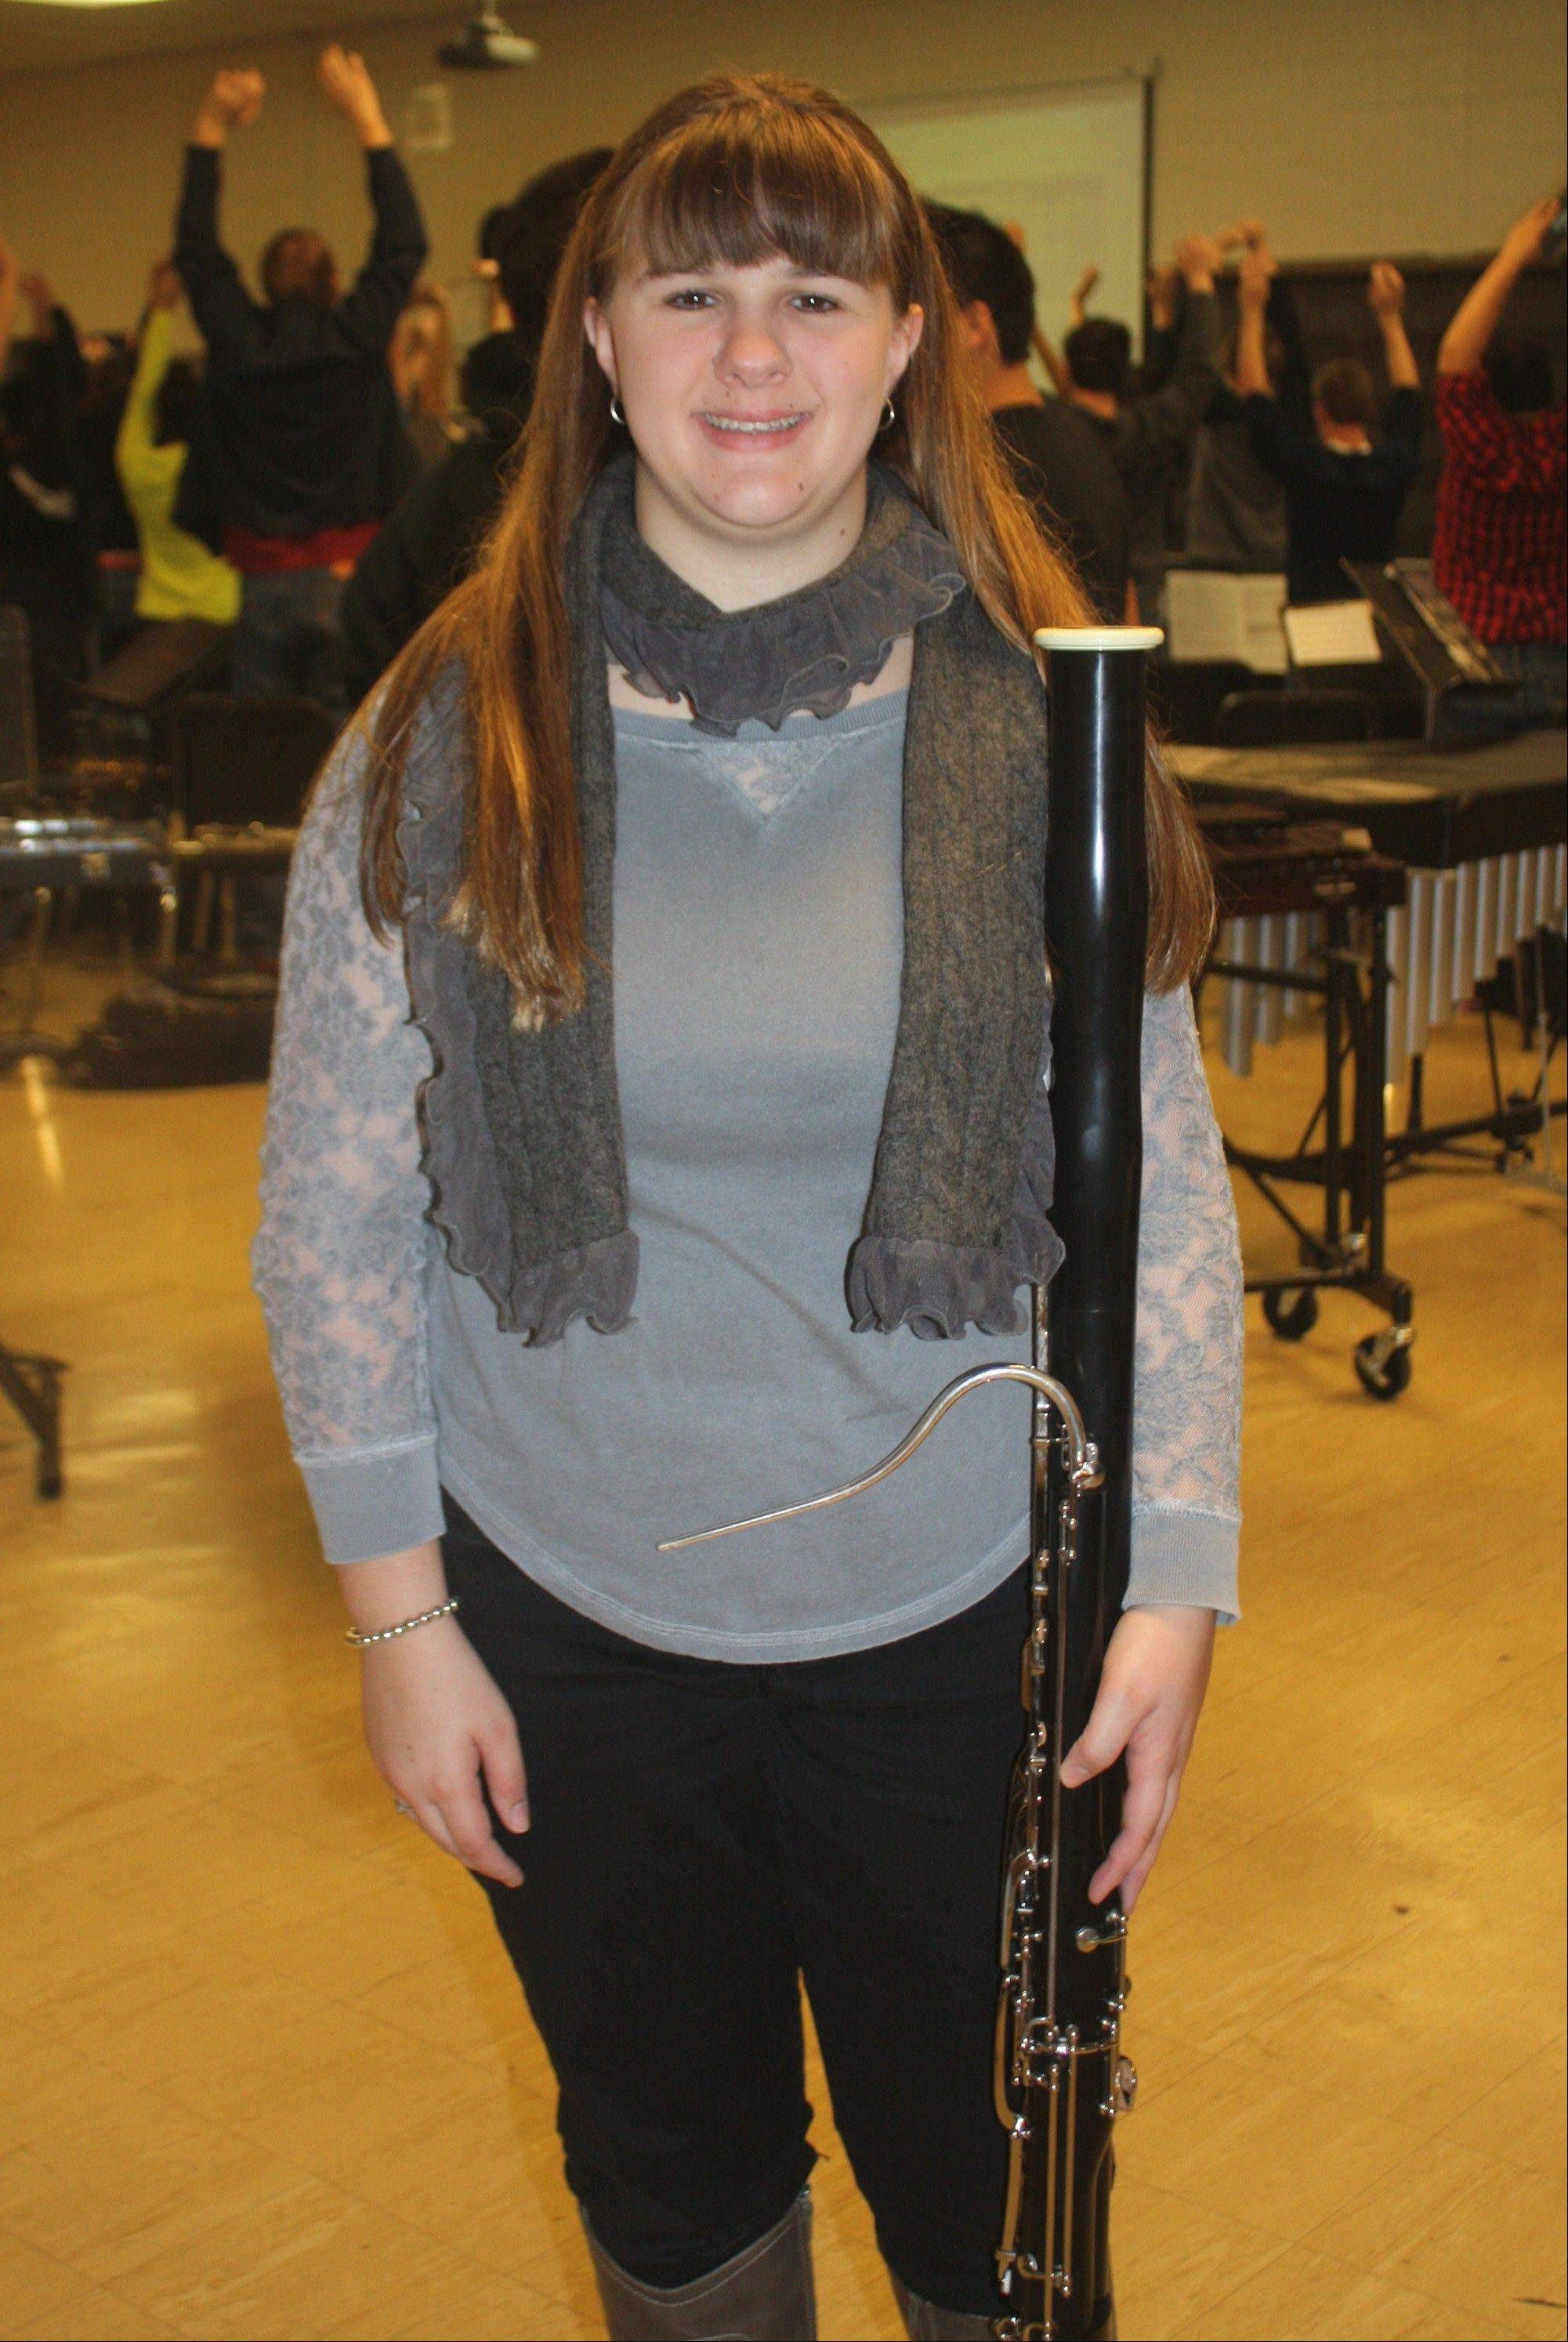 Maine West High School student Nichole Goumas is participating in the Illinois Music Educators Association's All-State Conference in Peoria.